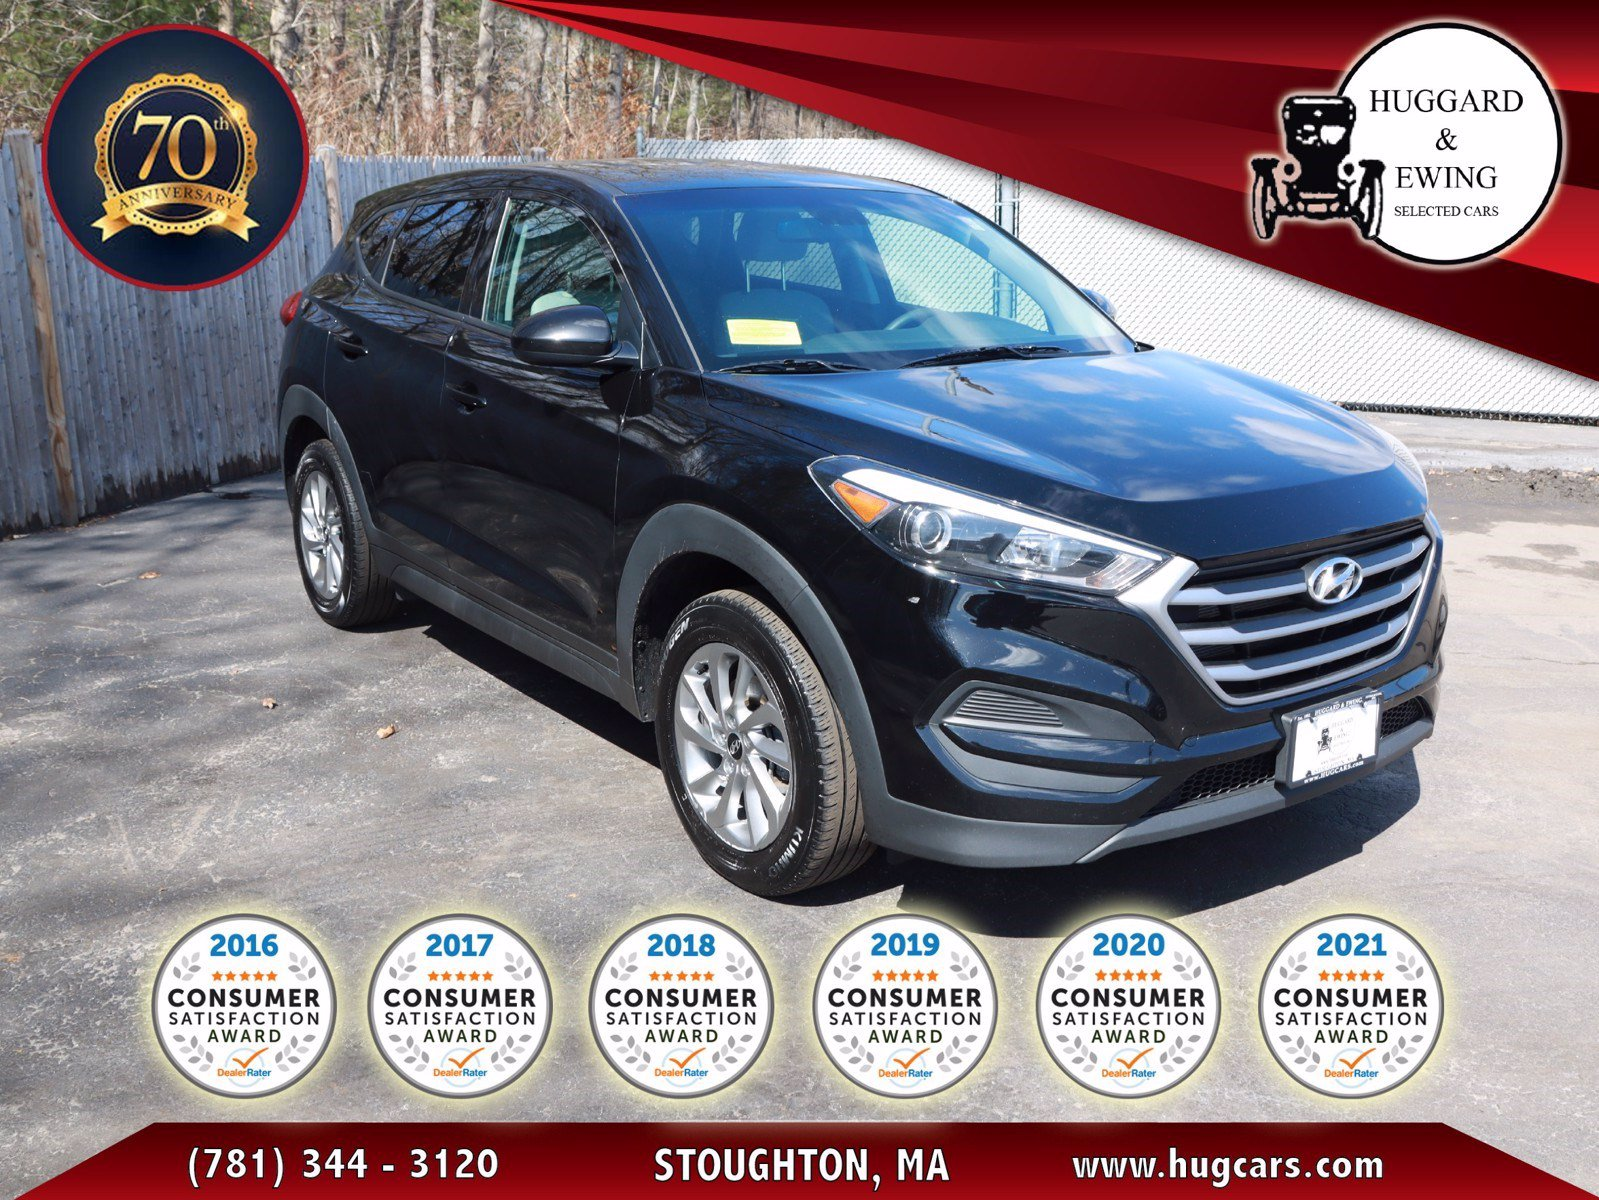 Used Hyundai Tucson Stoughton Ma